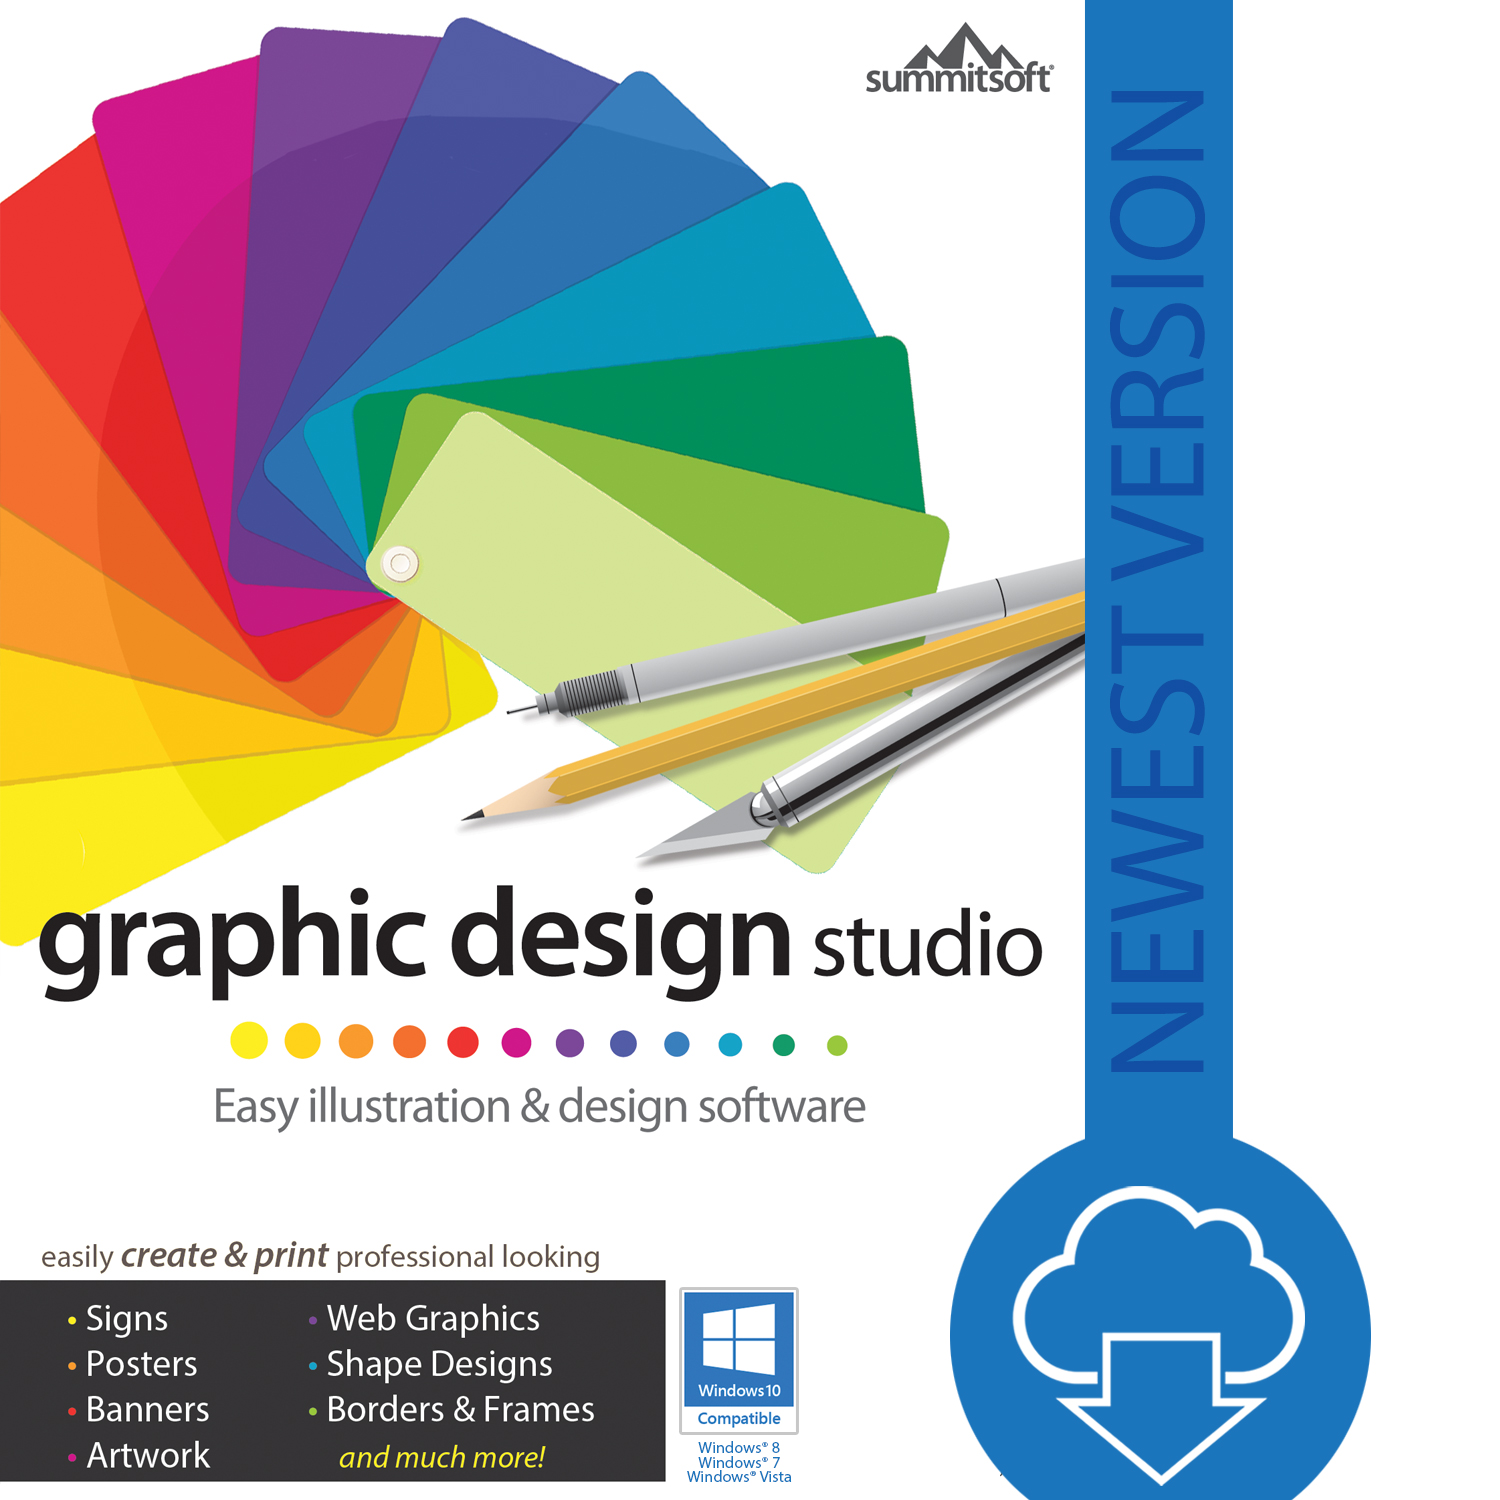 web design software for beginners - 4